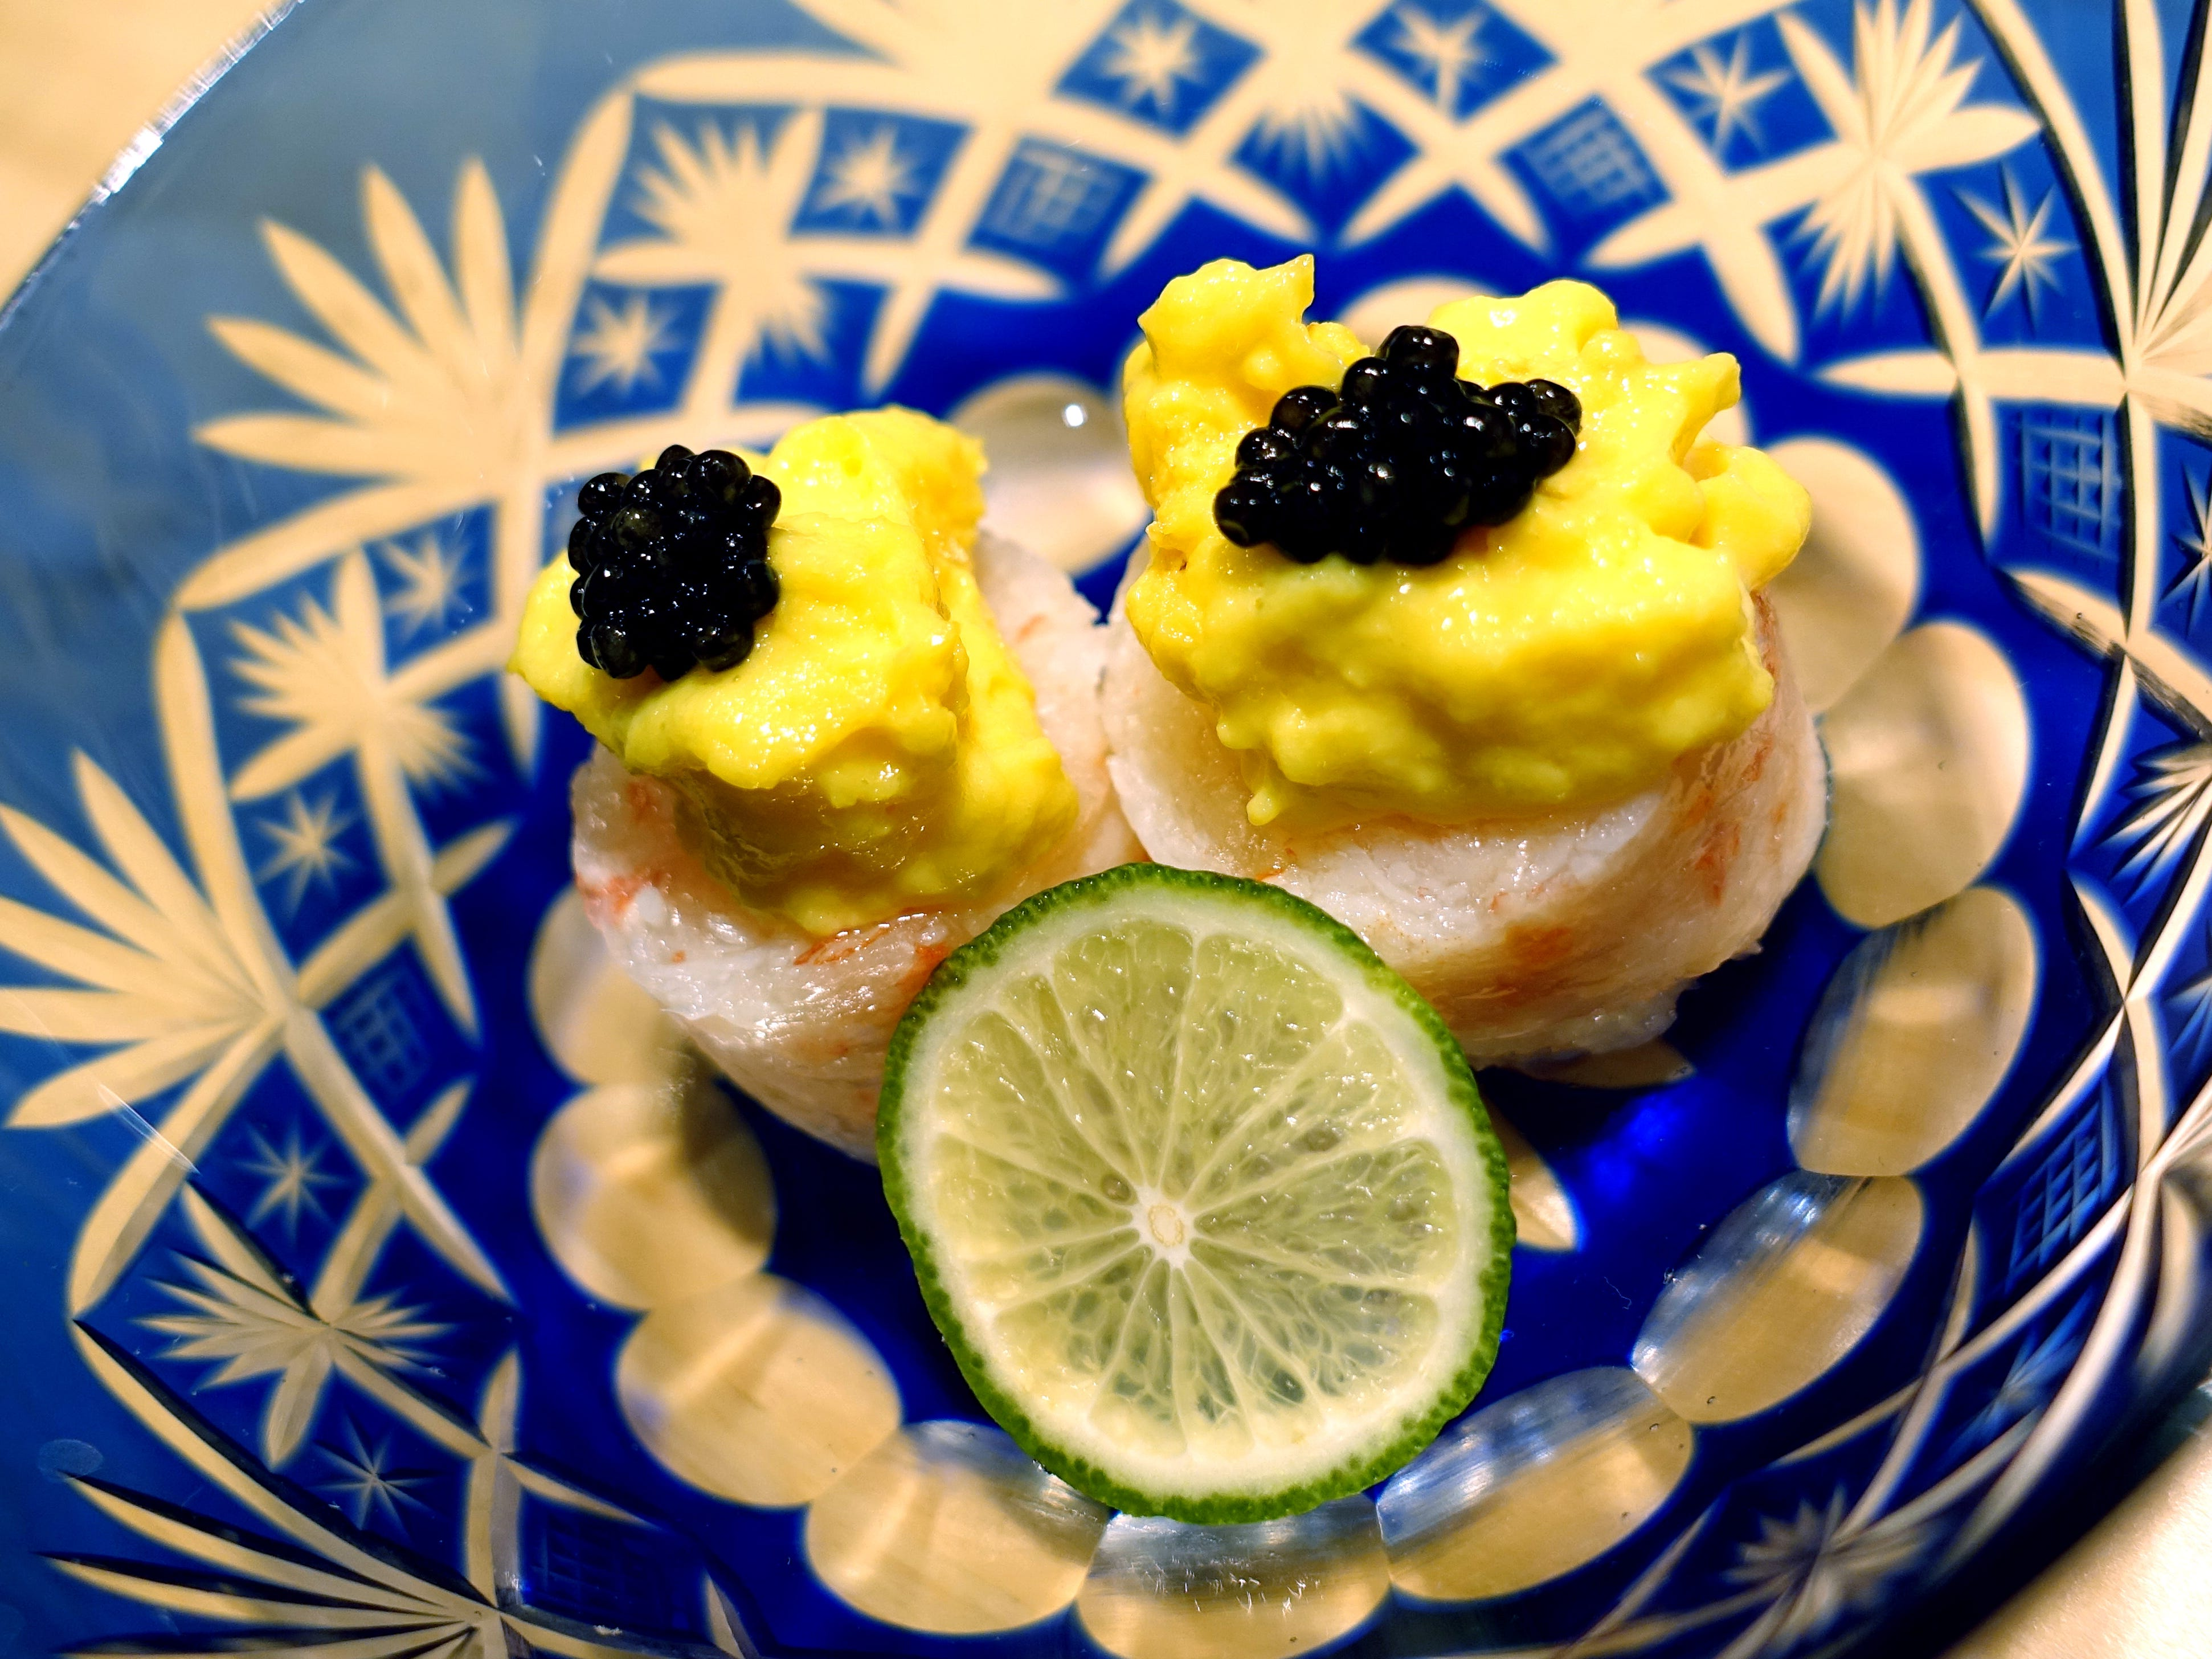 Snow crab with caviar and sweet vinegar and egg yolk sauce at ShinBay in Scottsdale.